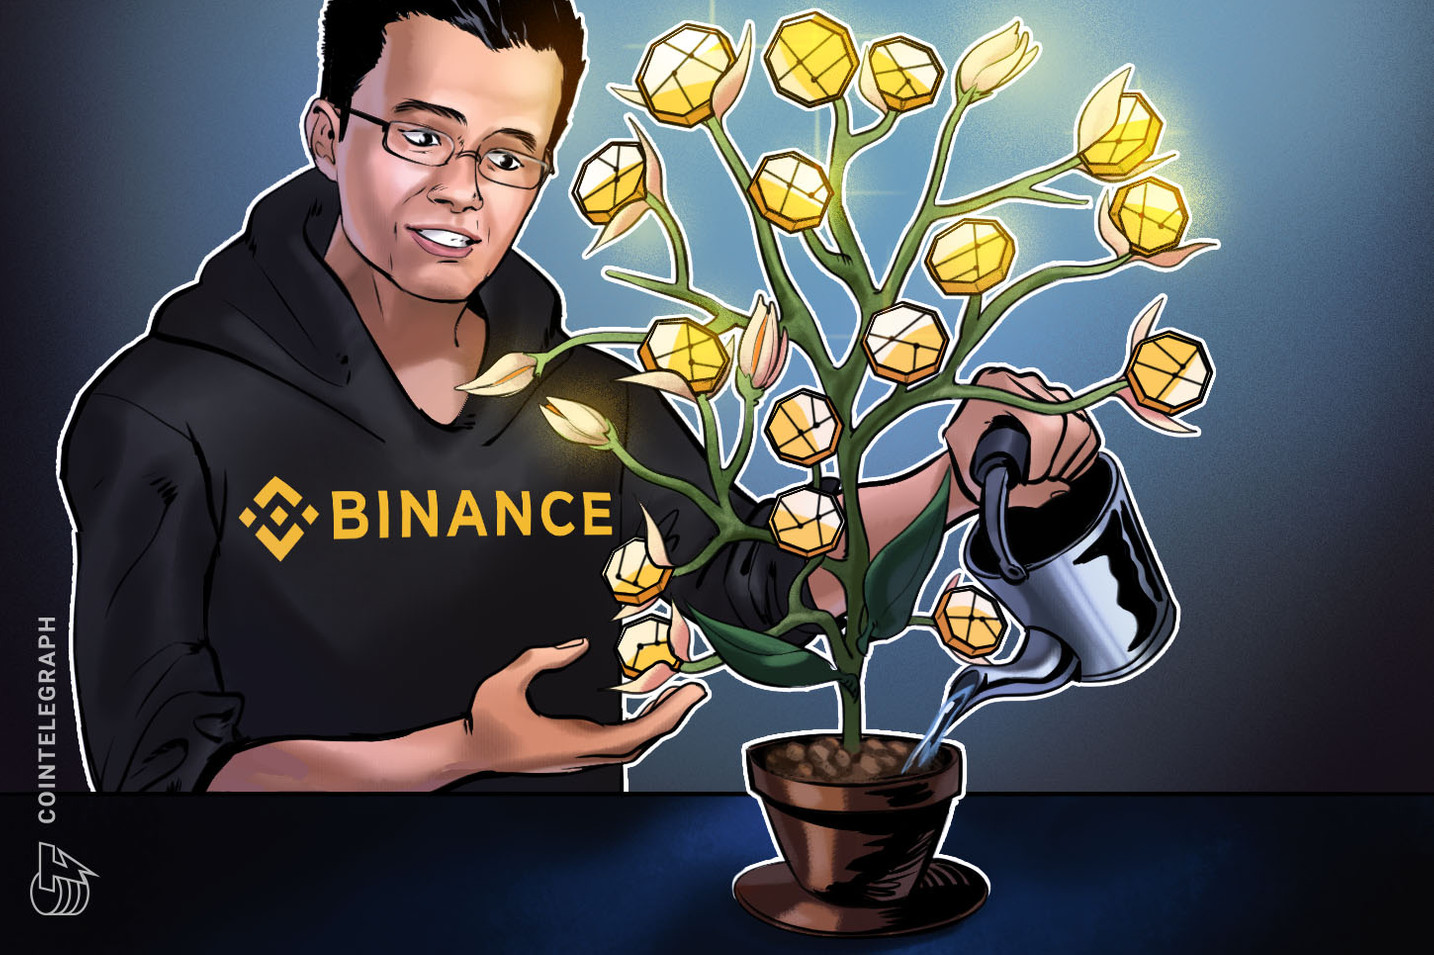 Binance implementa il supporto per la lira turca